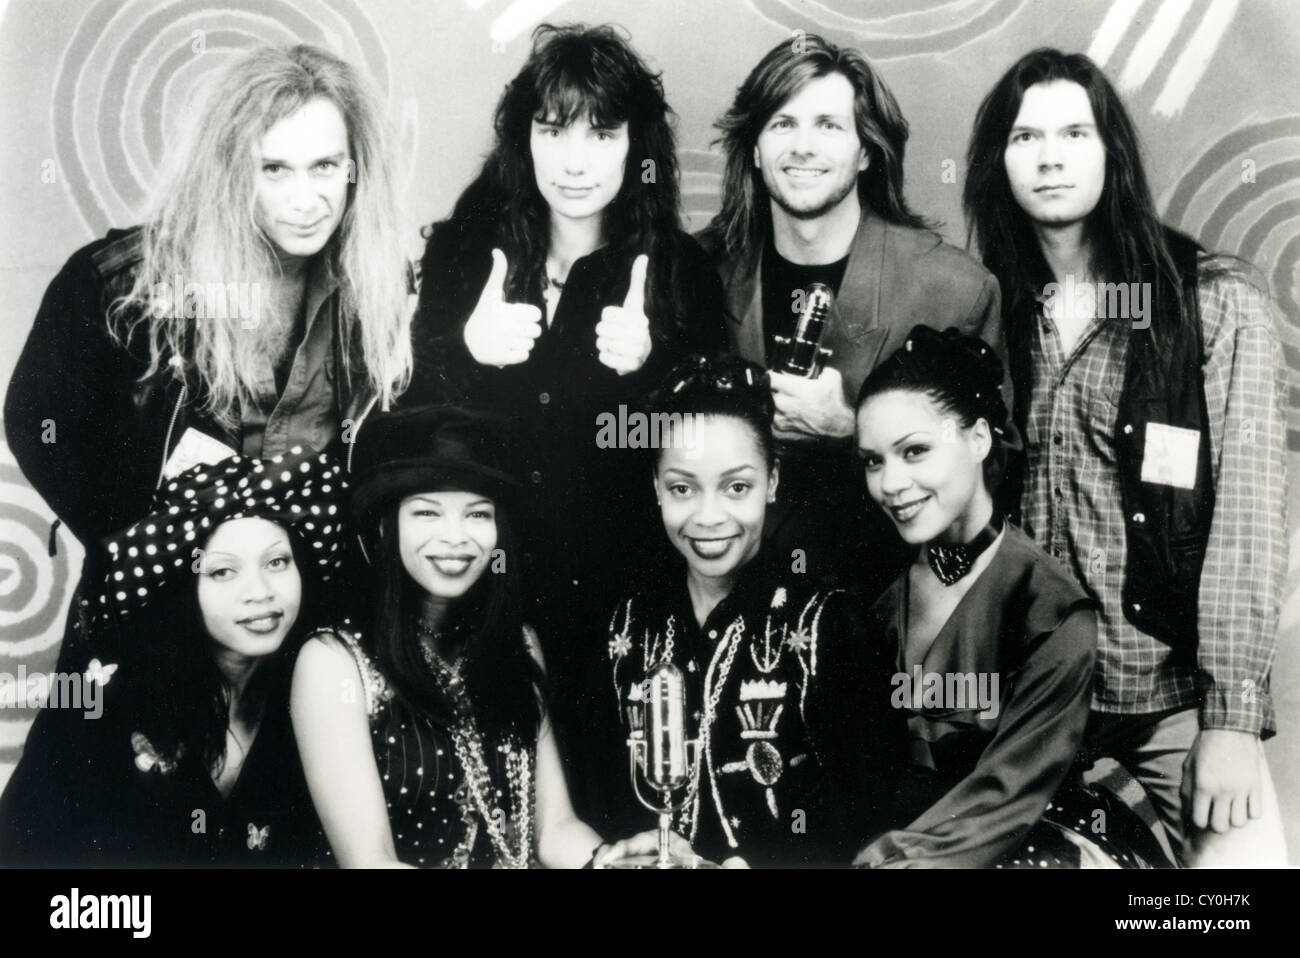 En Vogue Promotional Photo Of Us Girl Group With Mr Big In